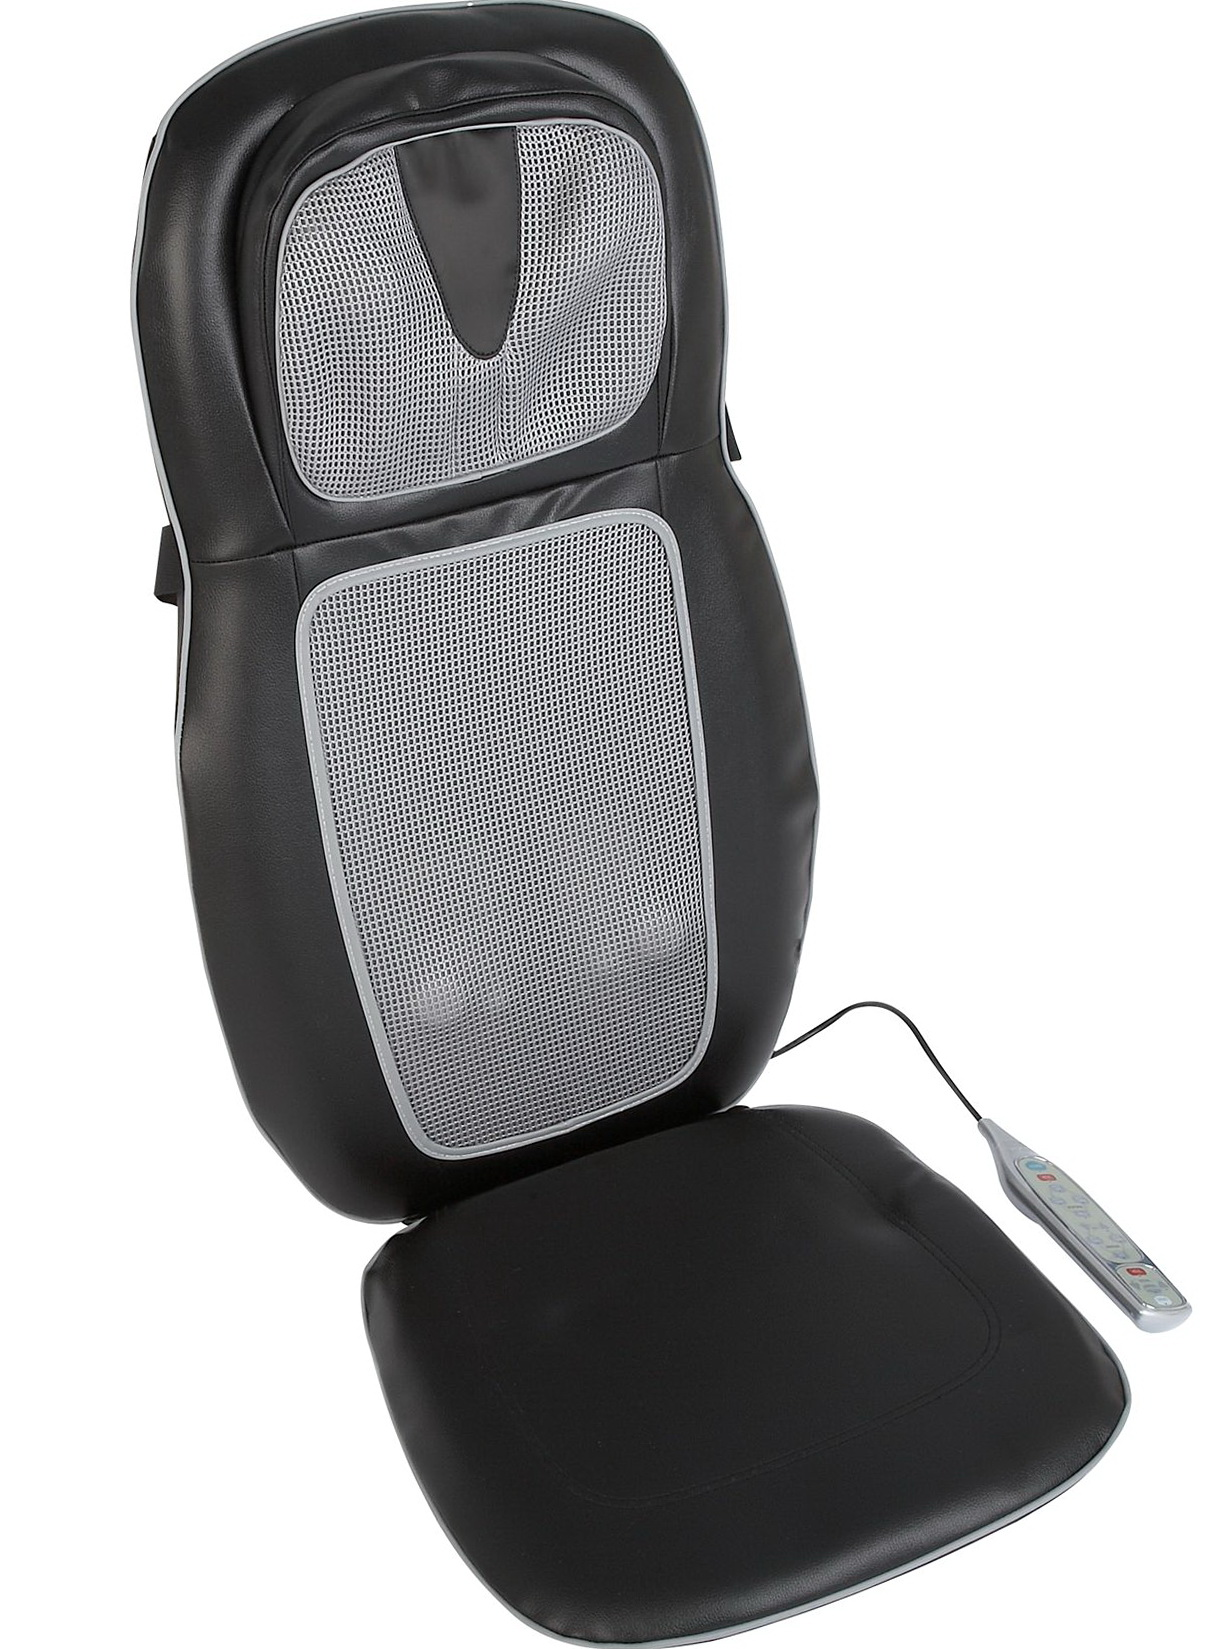 Homedics Shiatsu Massaging Cushion Model Sbm 200